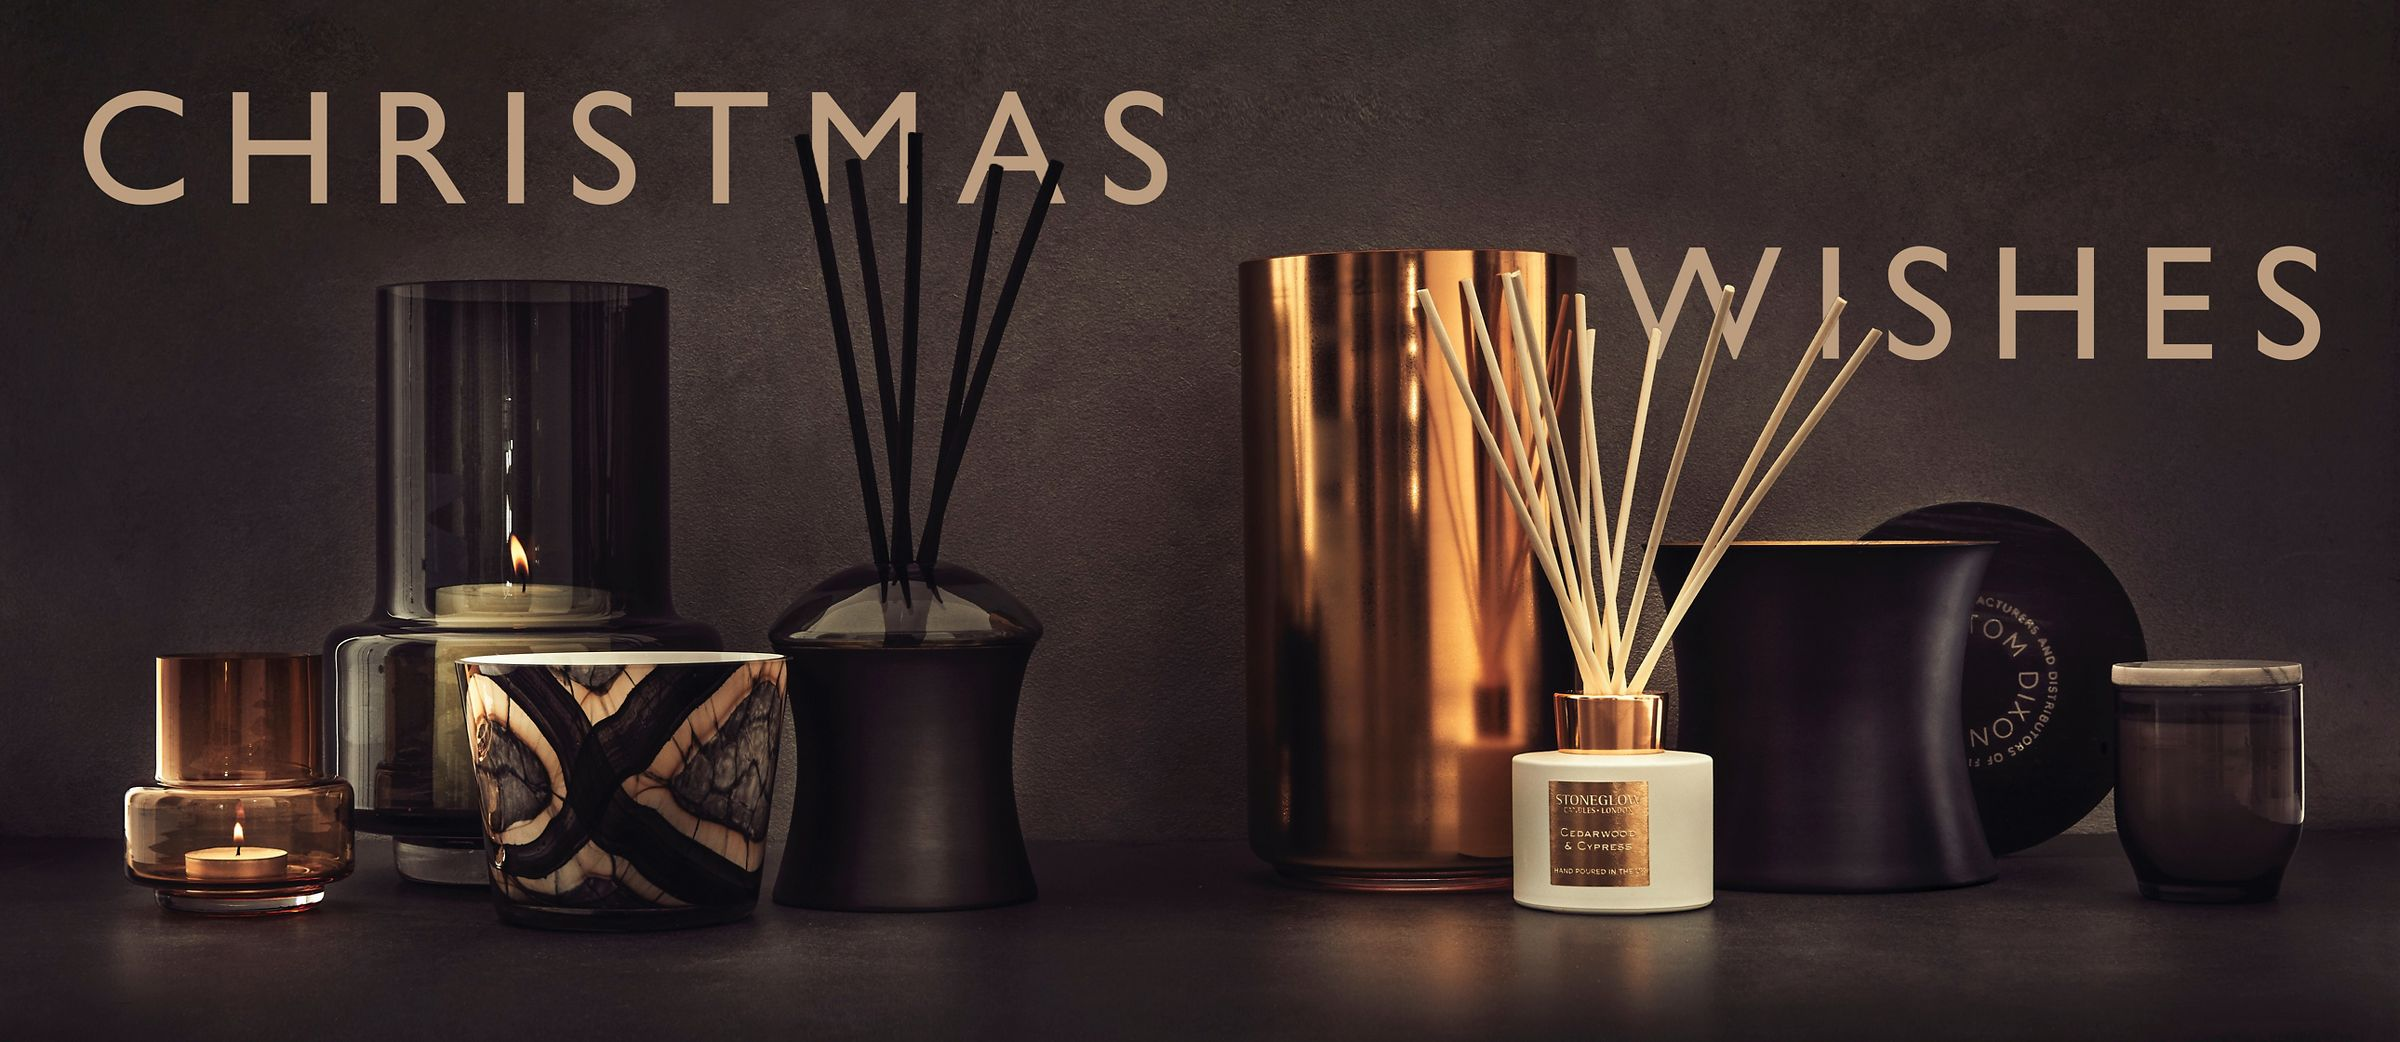 Christmas at John Lewis & Partners